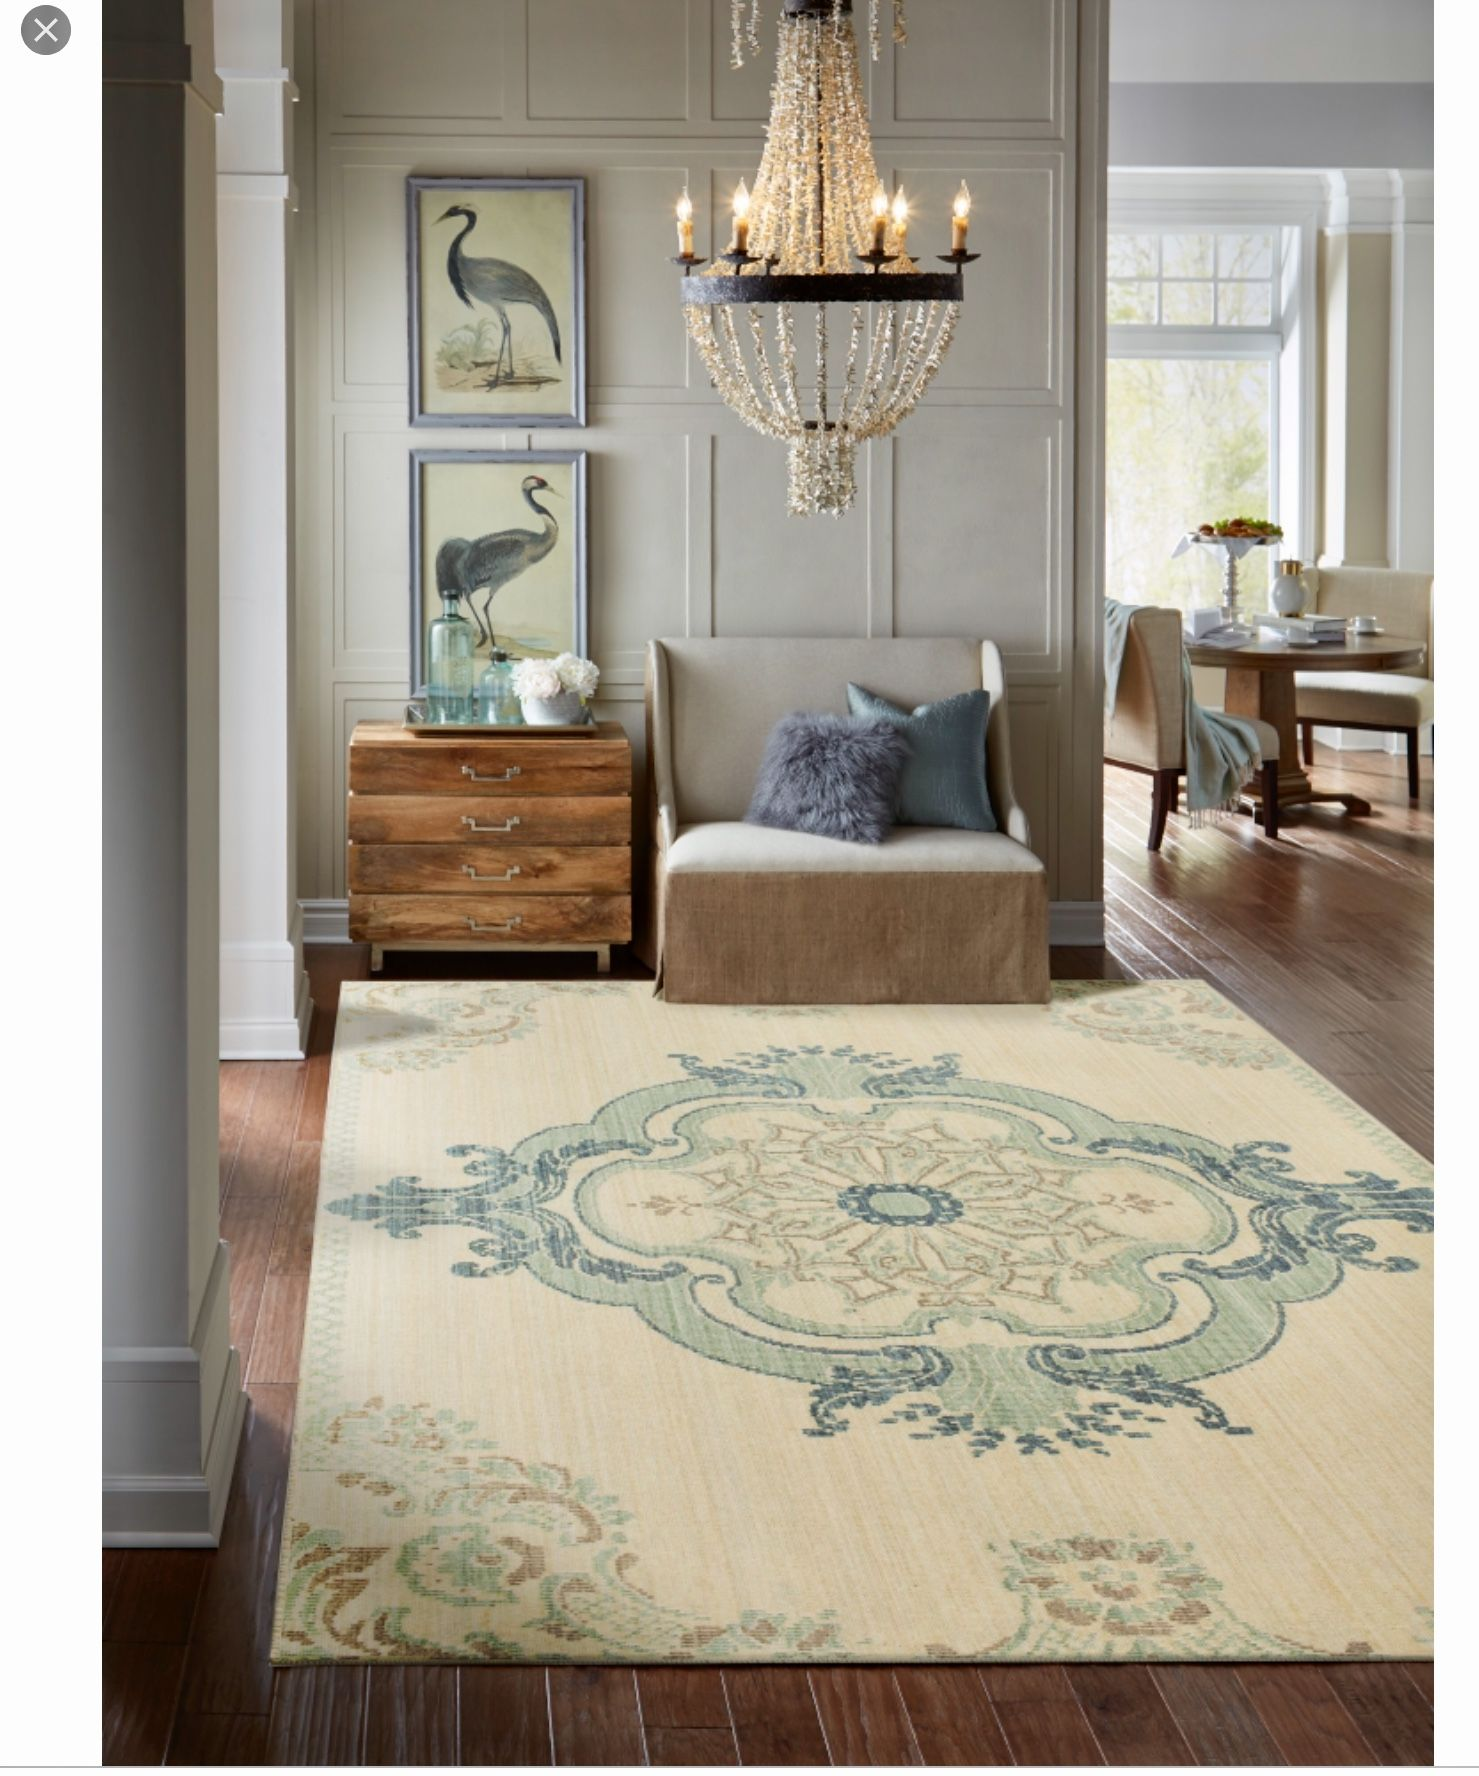 Pin By Deborah Gilley On Ideas For The House Clearance Rugs Traditional Style Rugs Home Decor